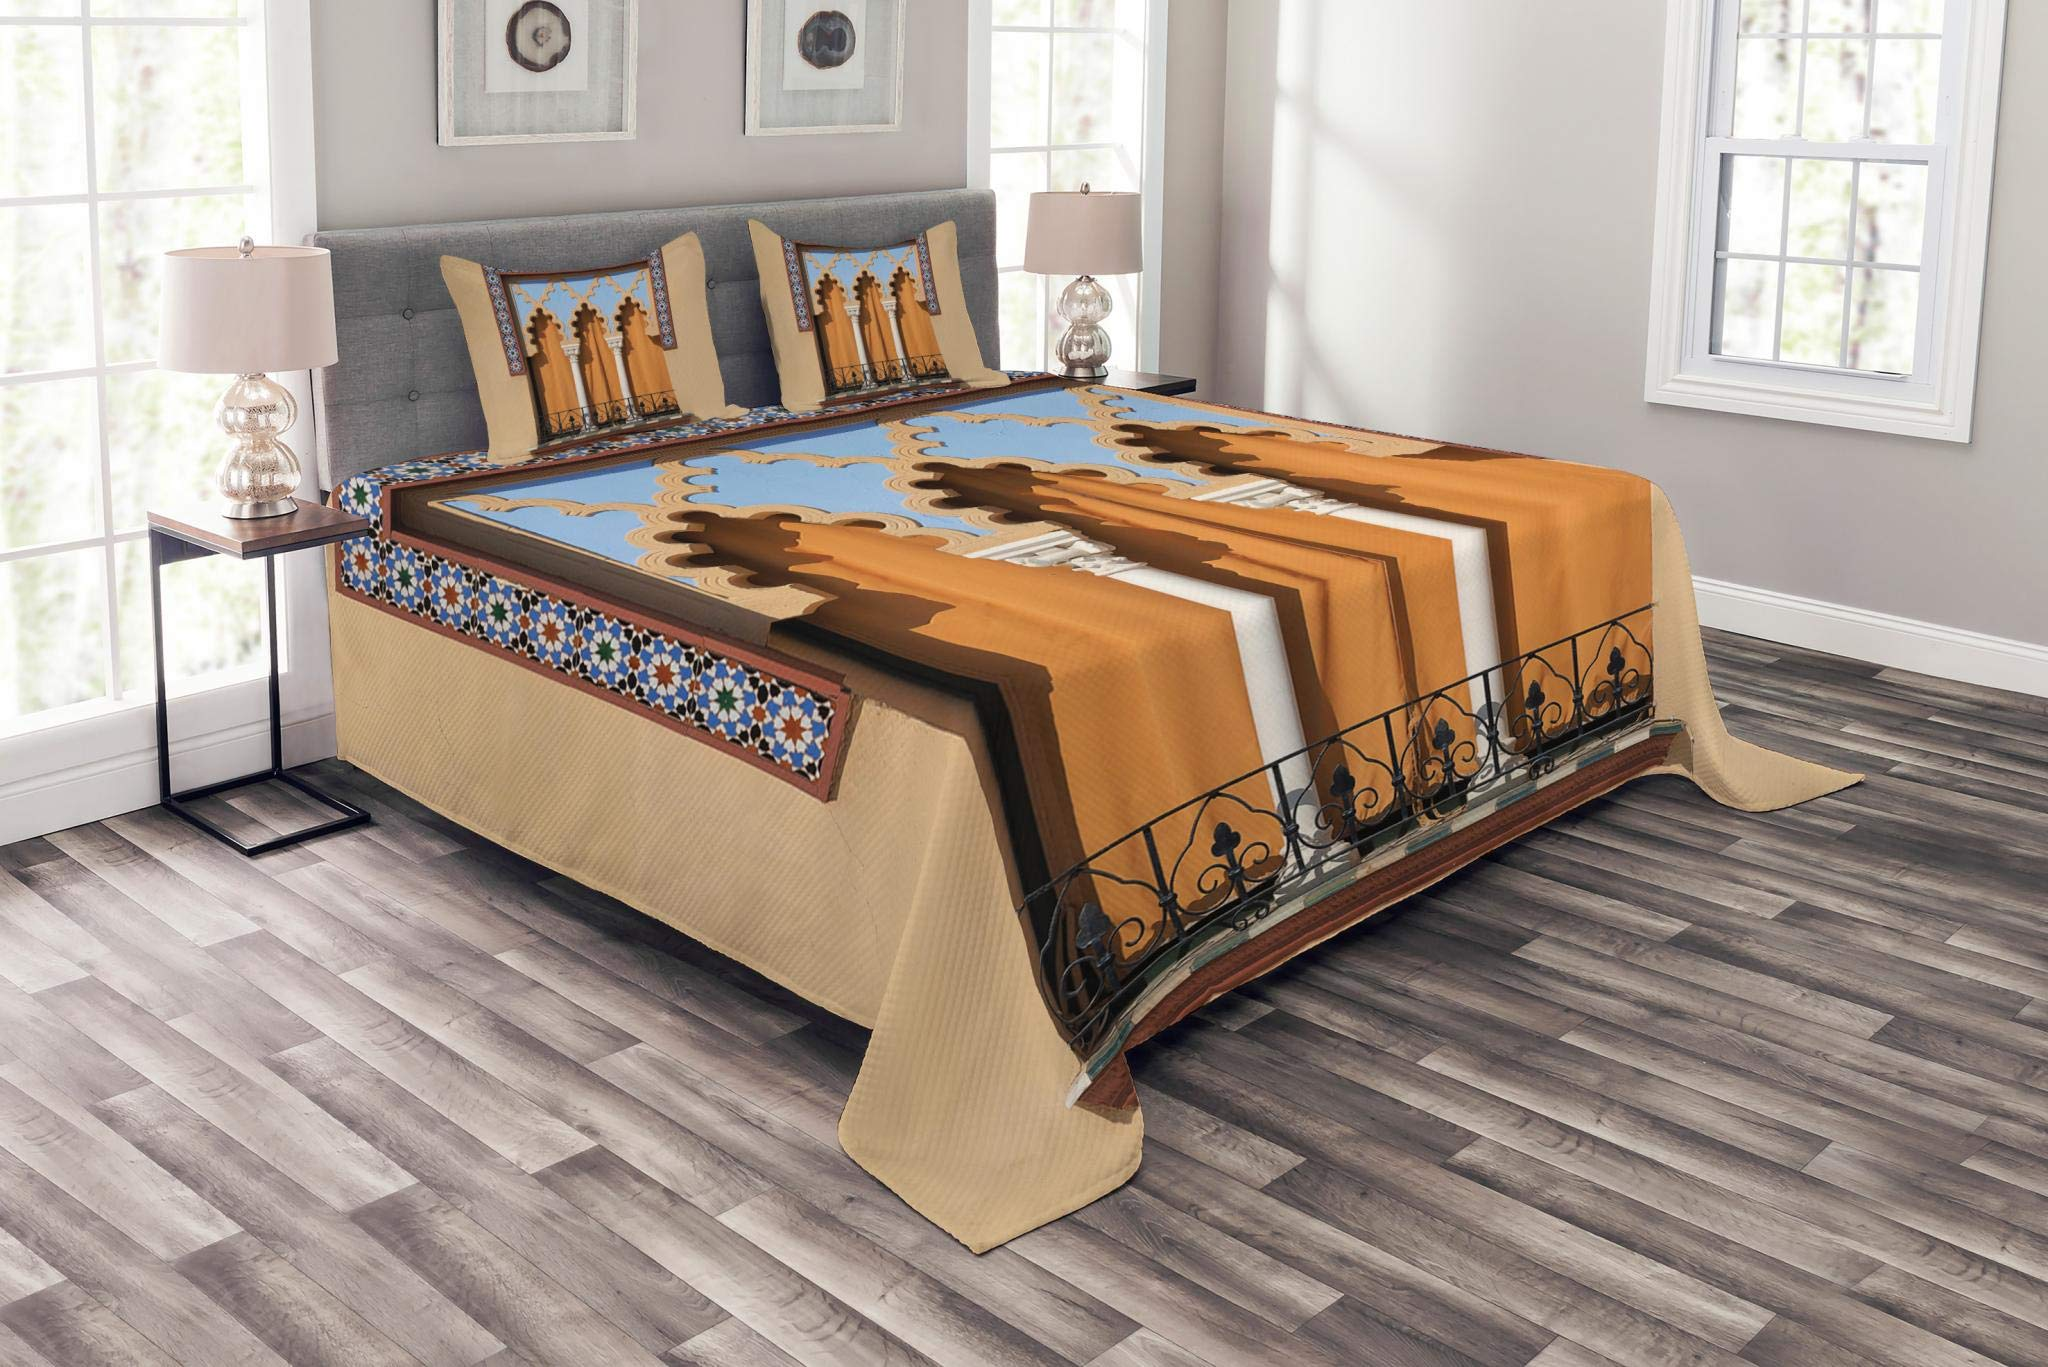 Lunarable Arabian Bedspread Set Queen Size, Old Windows in Arabian Style at Cordoba Spain Background Balconies City, Decorative Quilted 3 Piece Coverlet Set with 2 Pillow Shams, Sand Brown Pale Blue